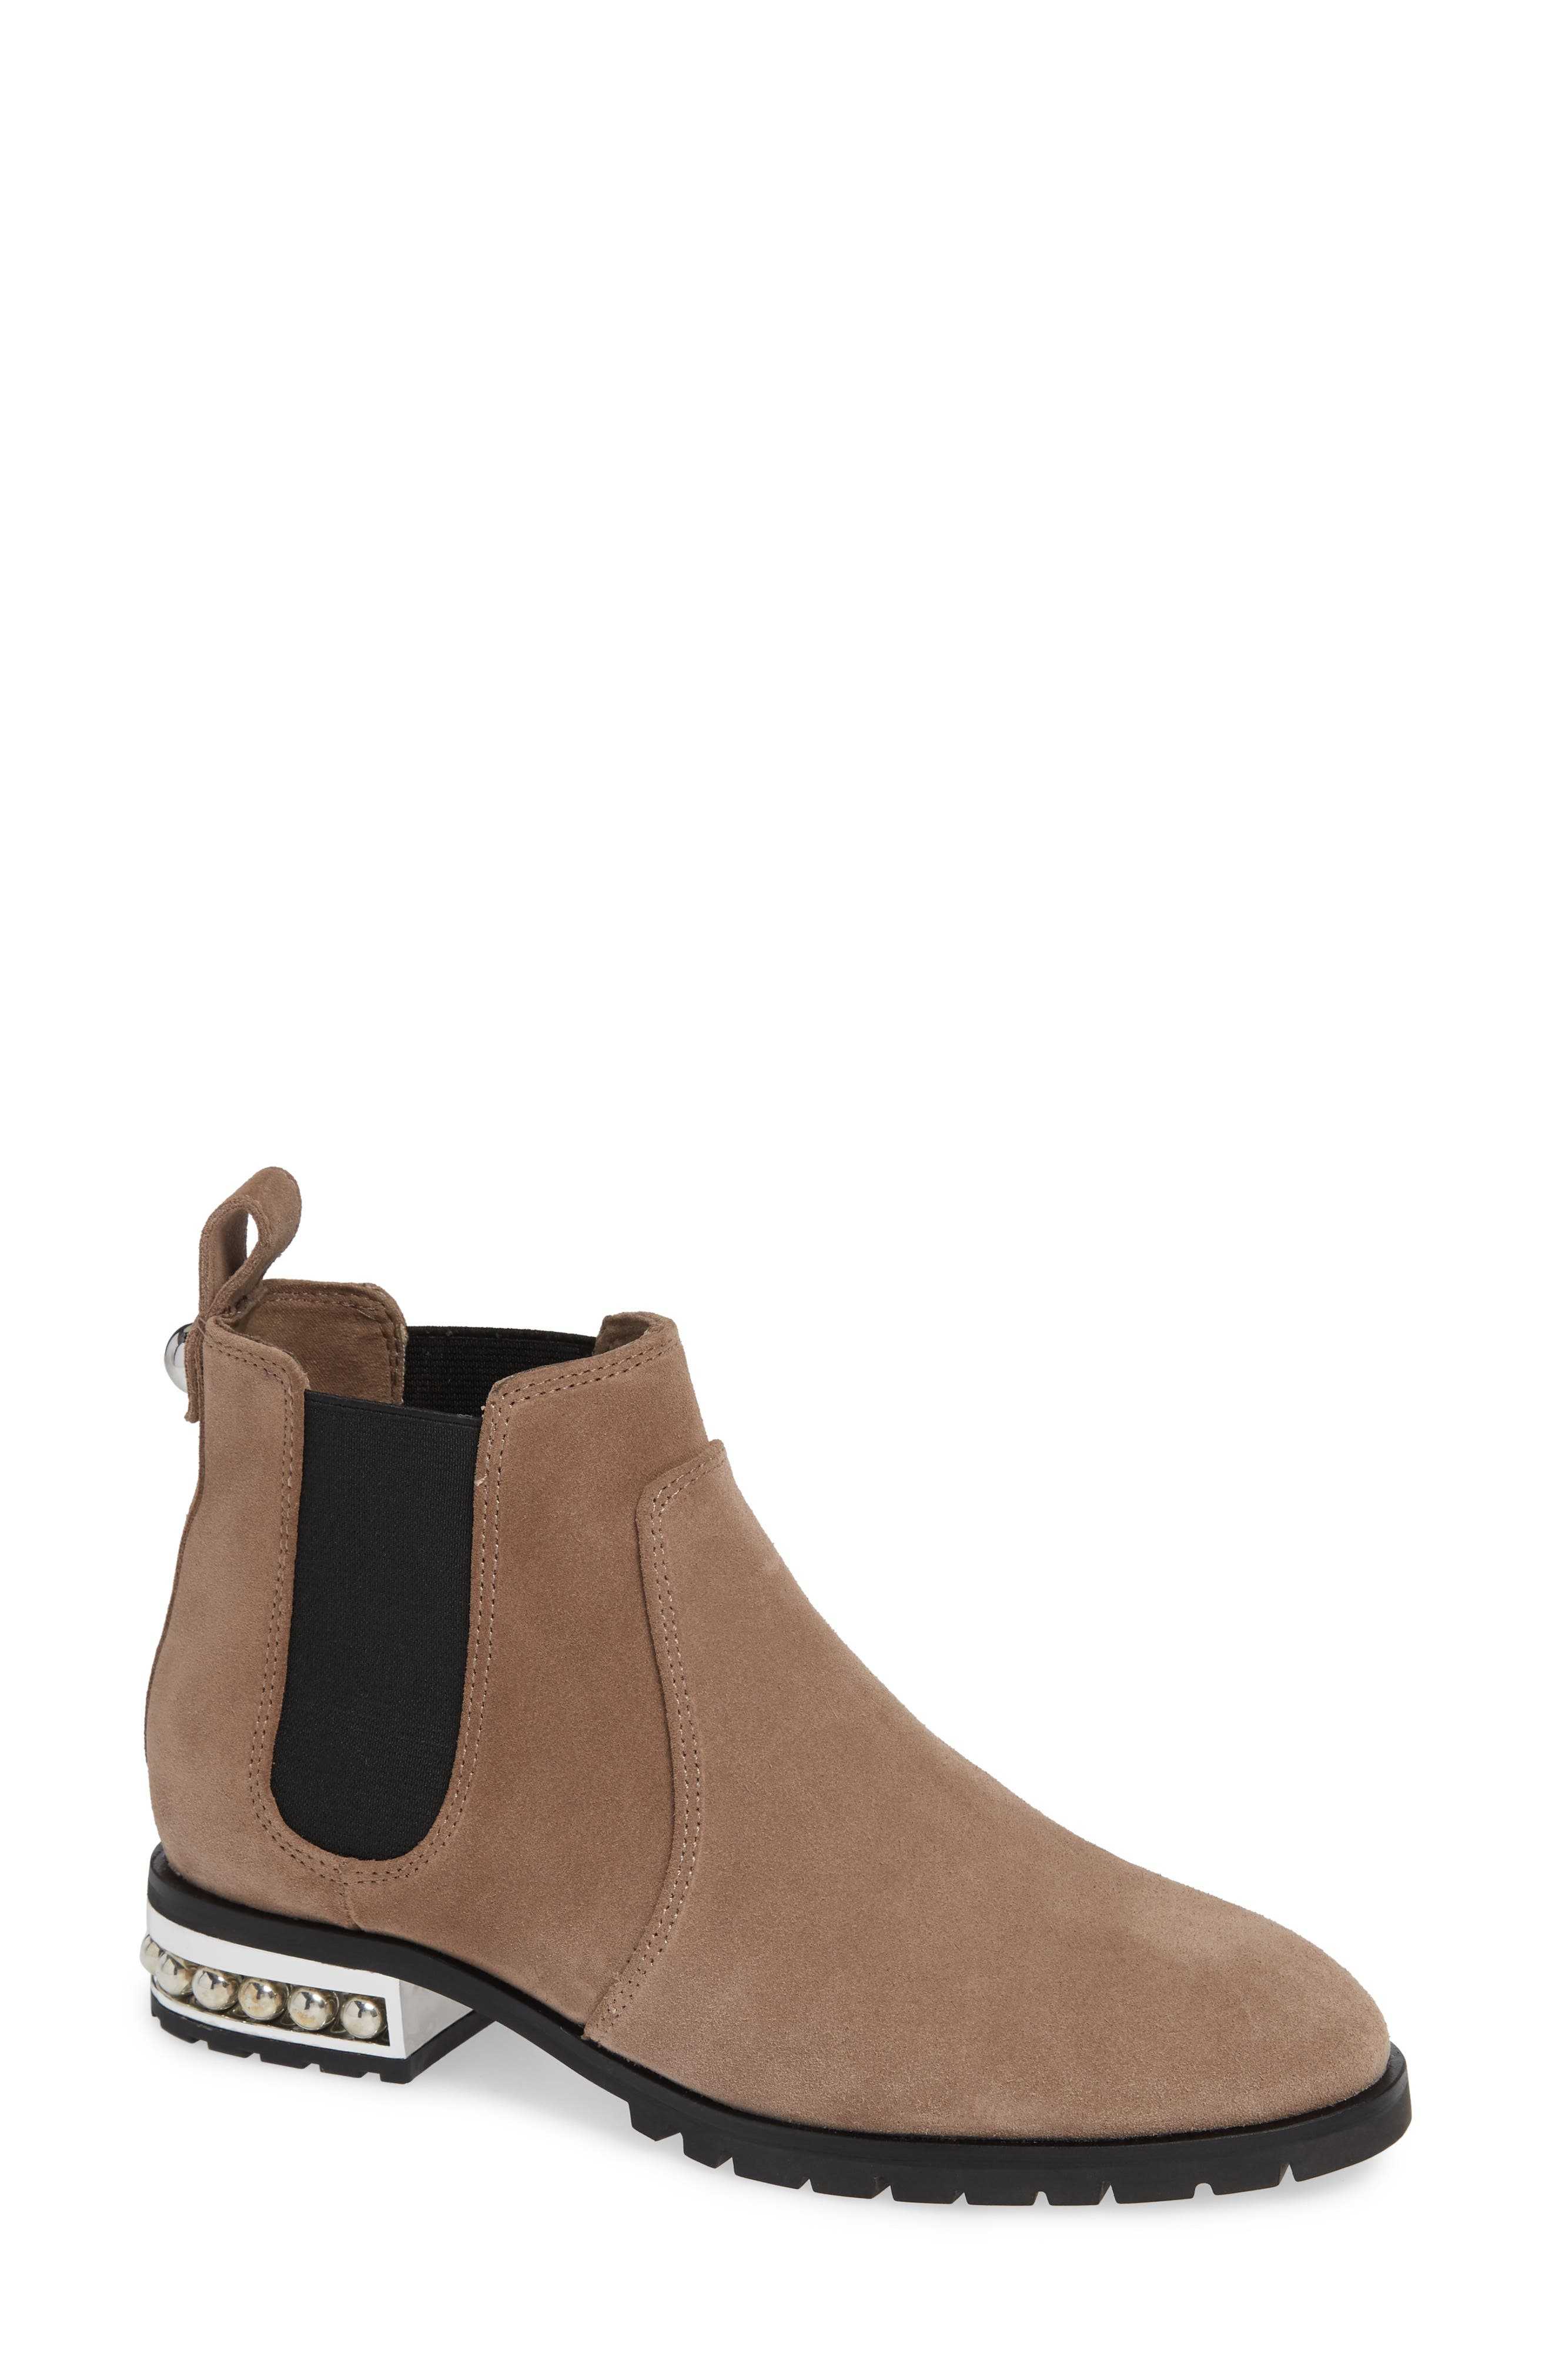 KARL LAGERFELD PARIS Saxe Chelsea Bootie, Main, color, TAUPE SUEDE